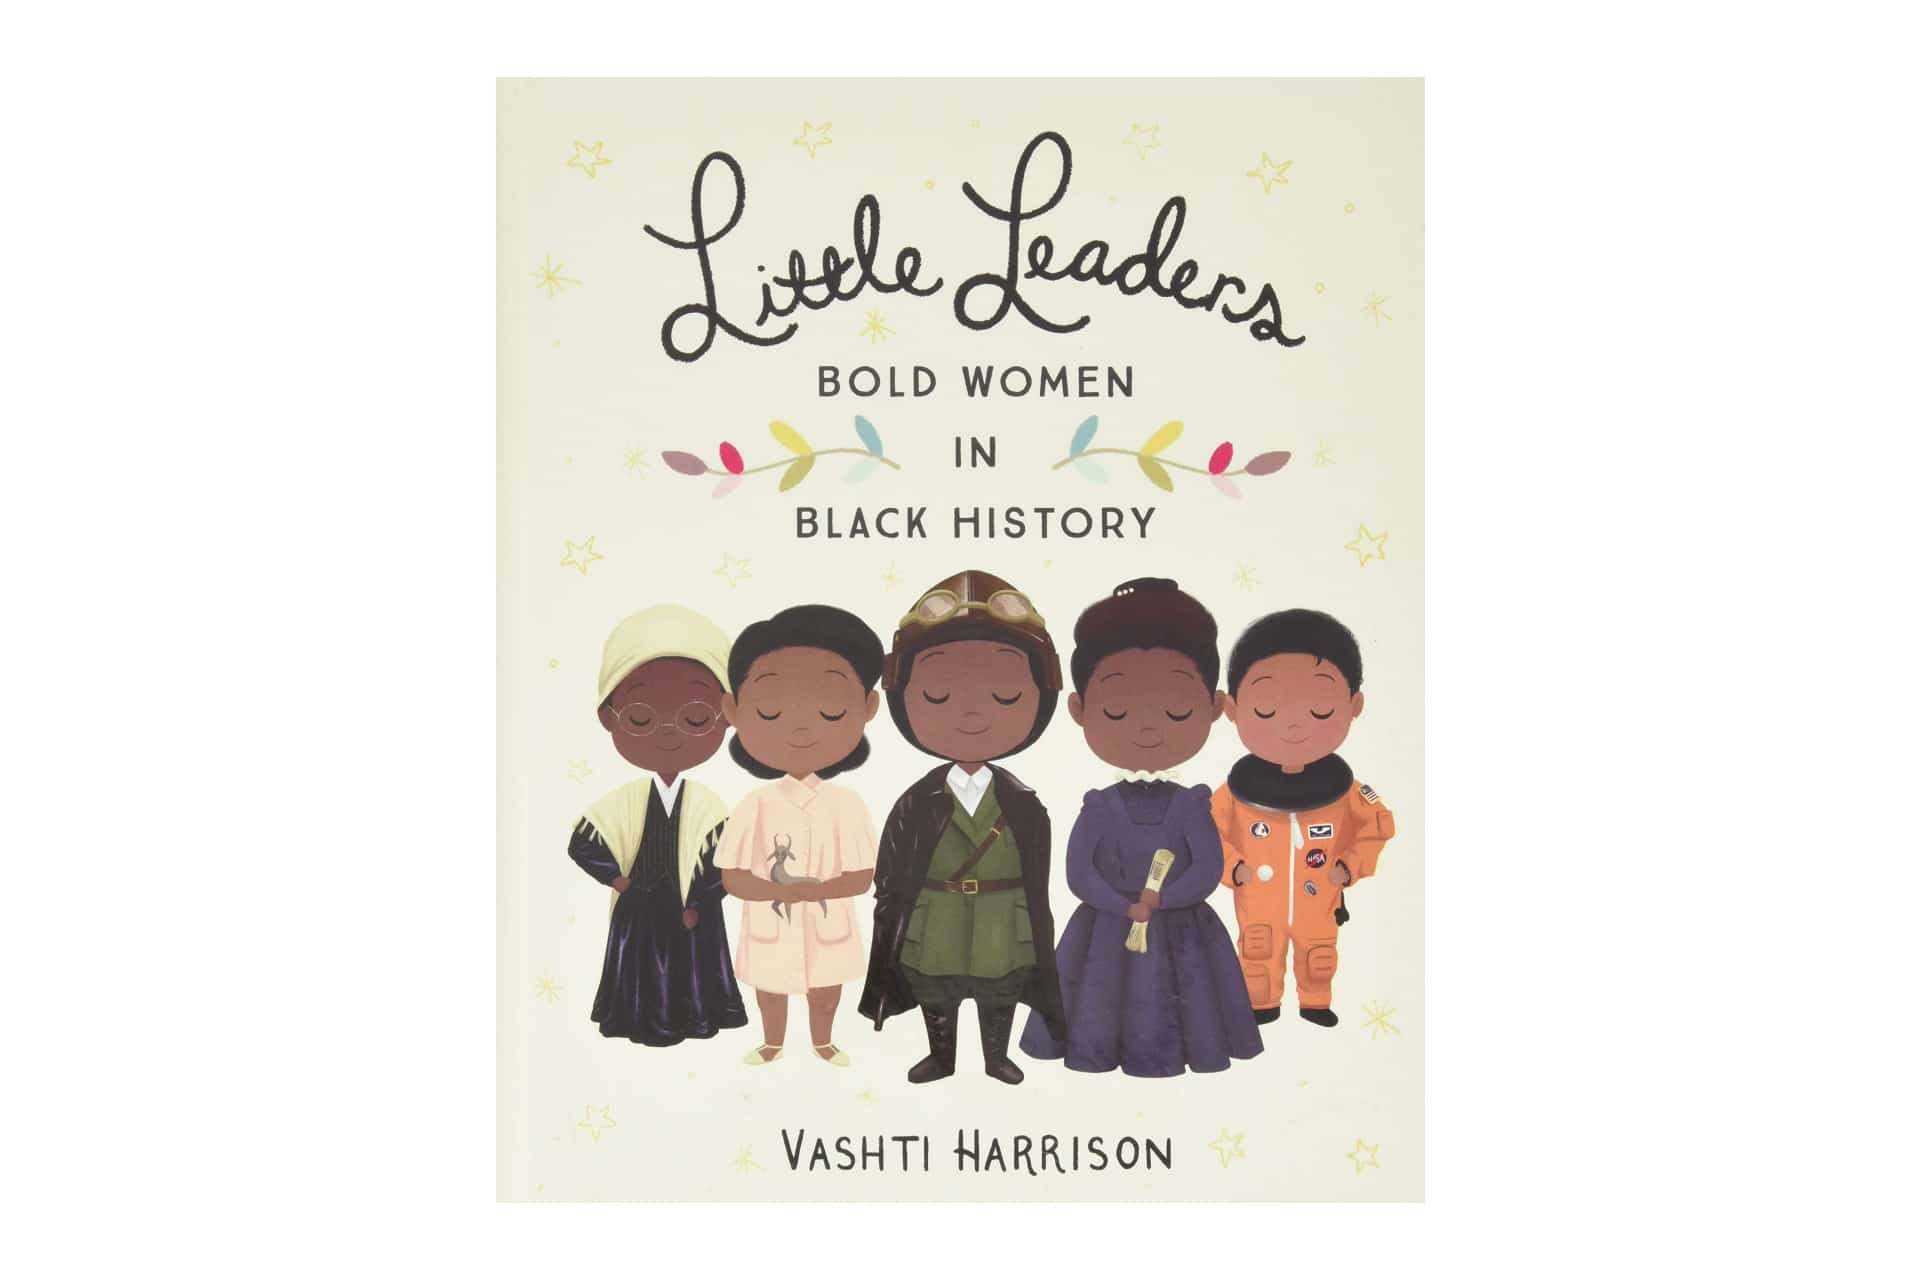 Picture book for Black History Month called Little Leaders Bold Women in History